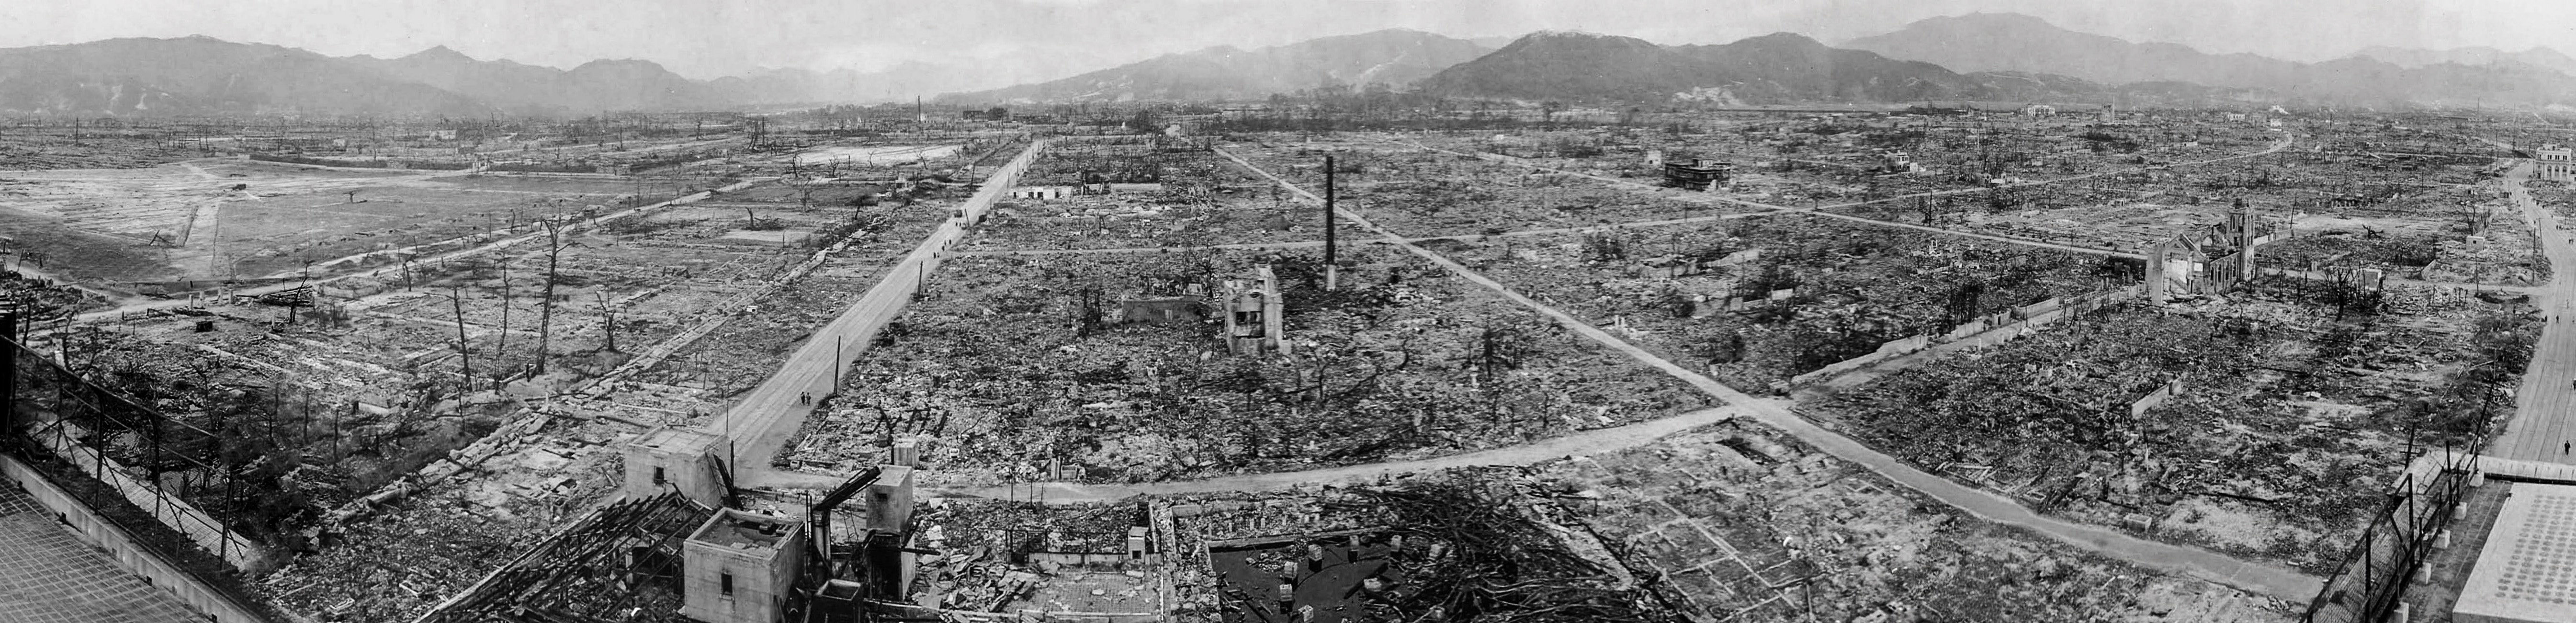 UNSPECIFIED - CIRCA 1754: hiroshima panoramic viwe of the destruction after the atomic bomb exploded over the city in 1945 (Photo by Universal History Archive/Getty Images)